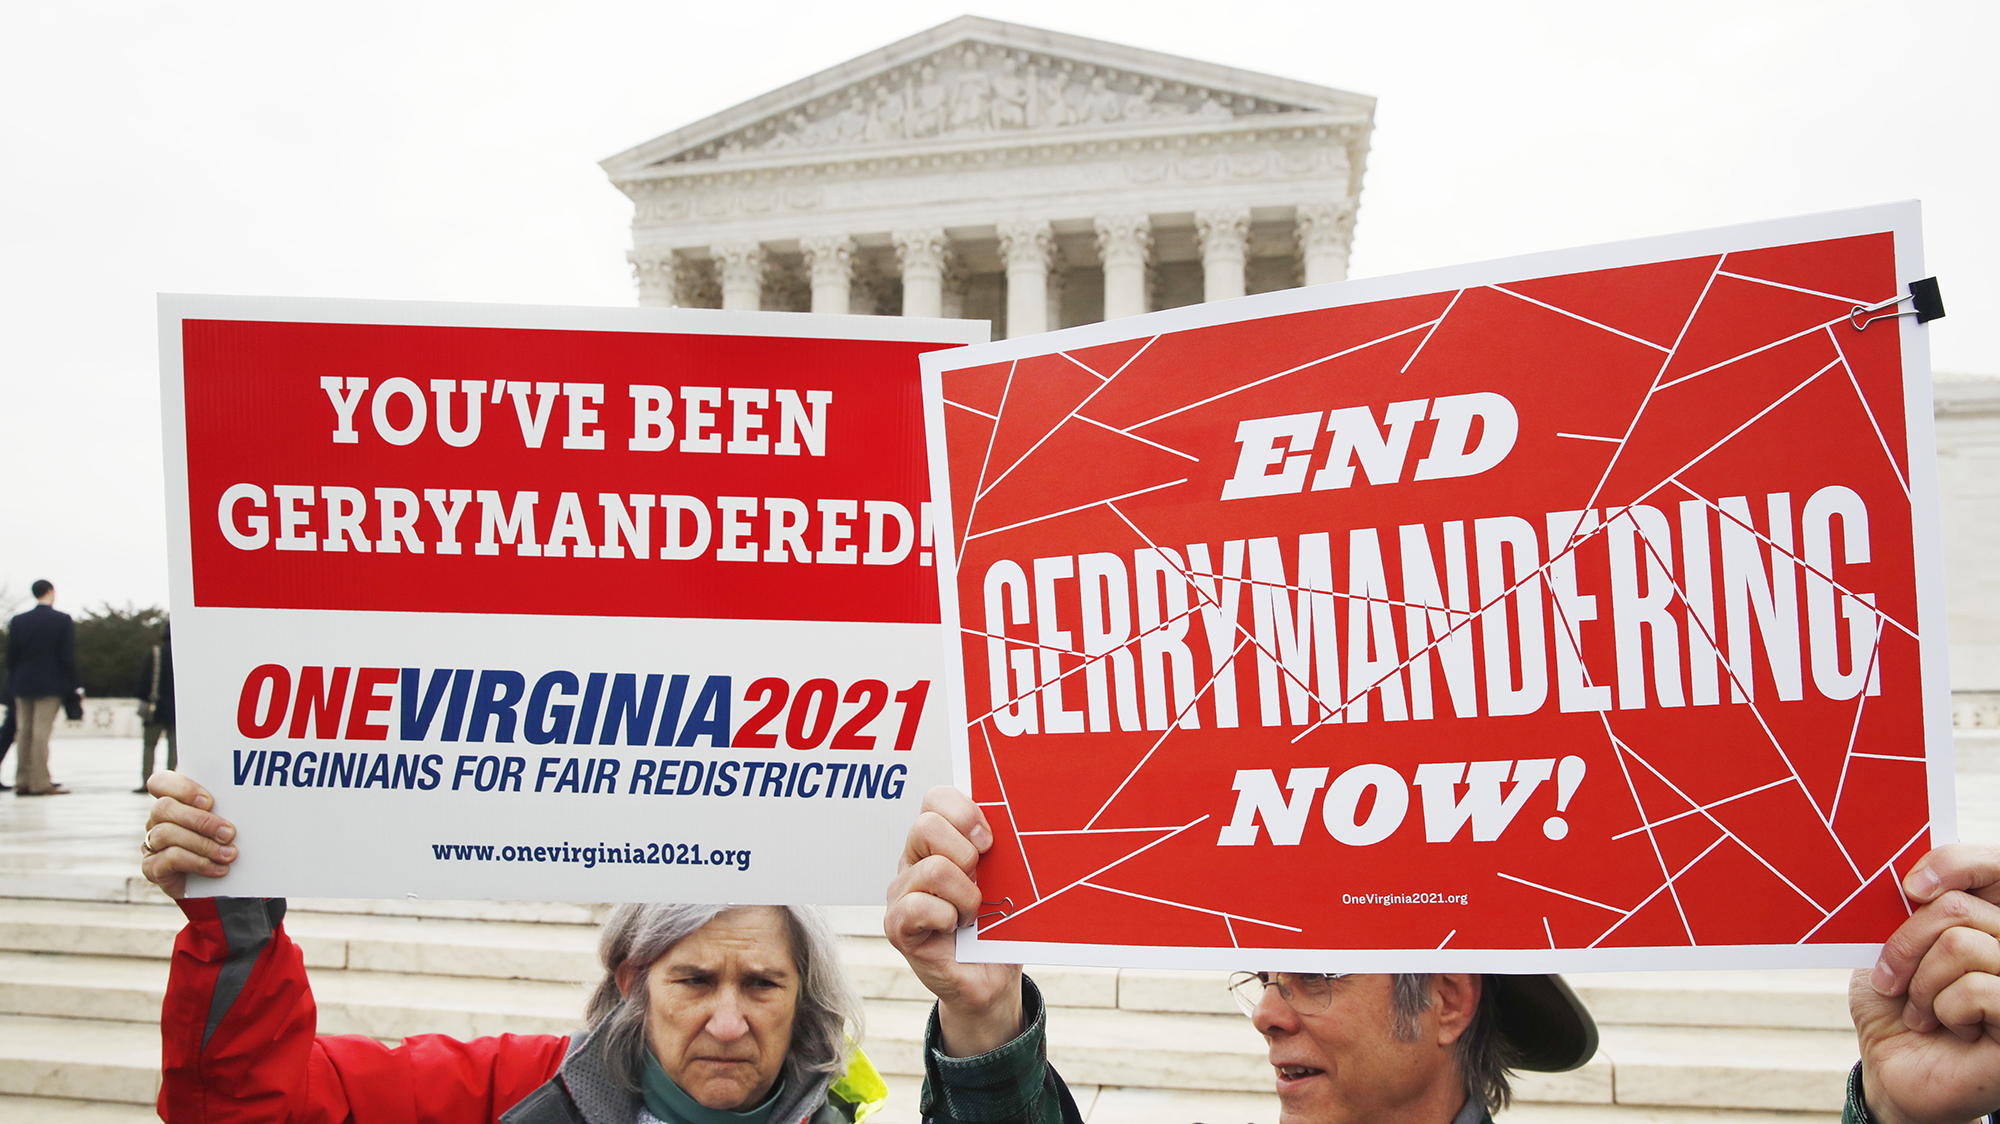 Supreme Court Avoids Answer on Partisan Gerrymandering in Wisconsin, Maryland Cases